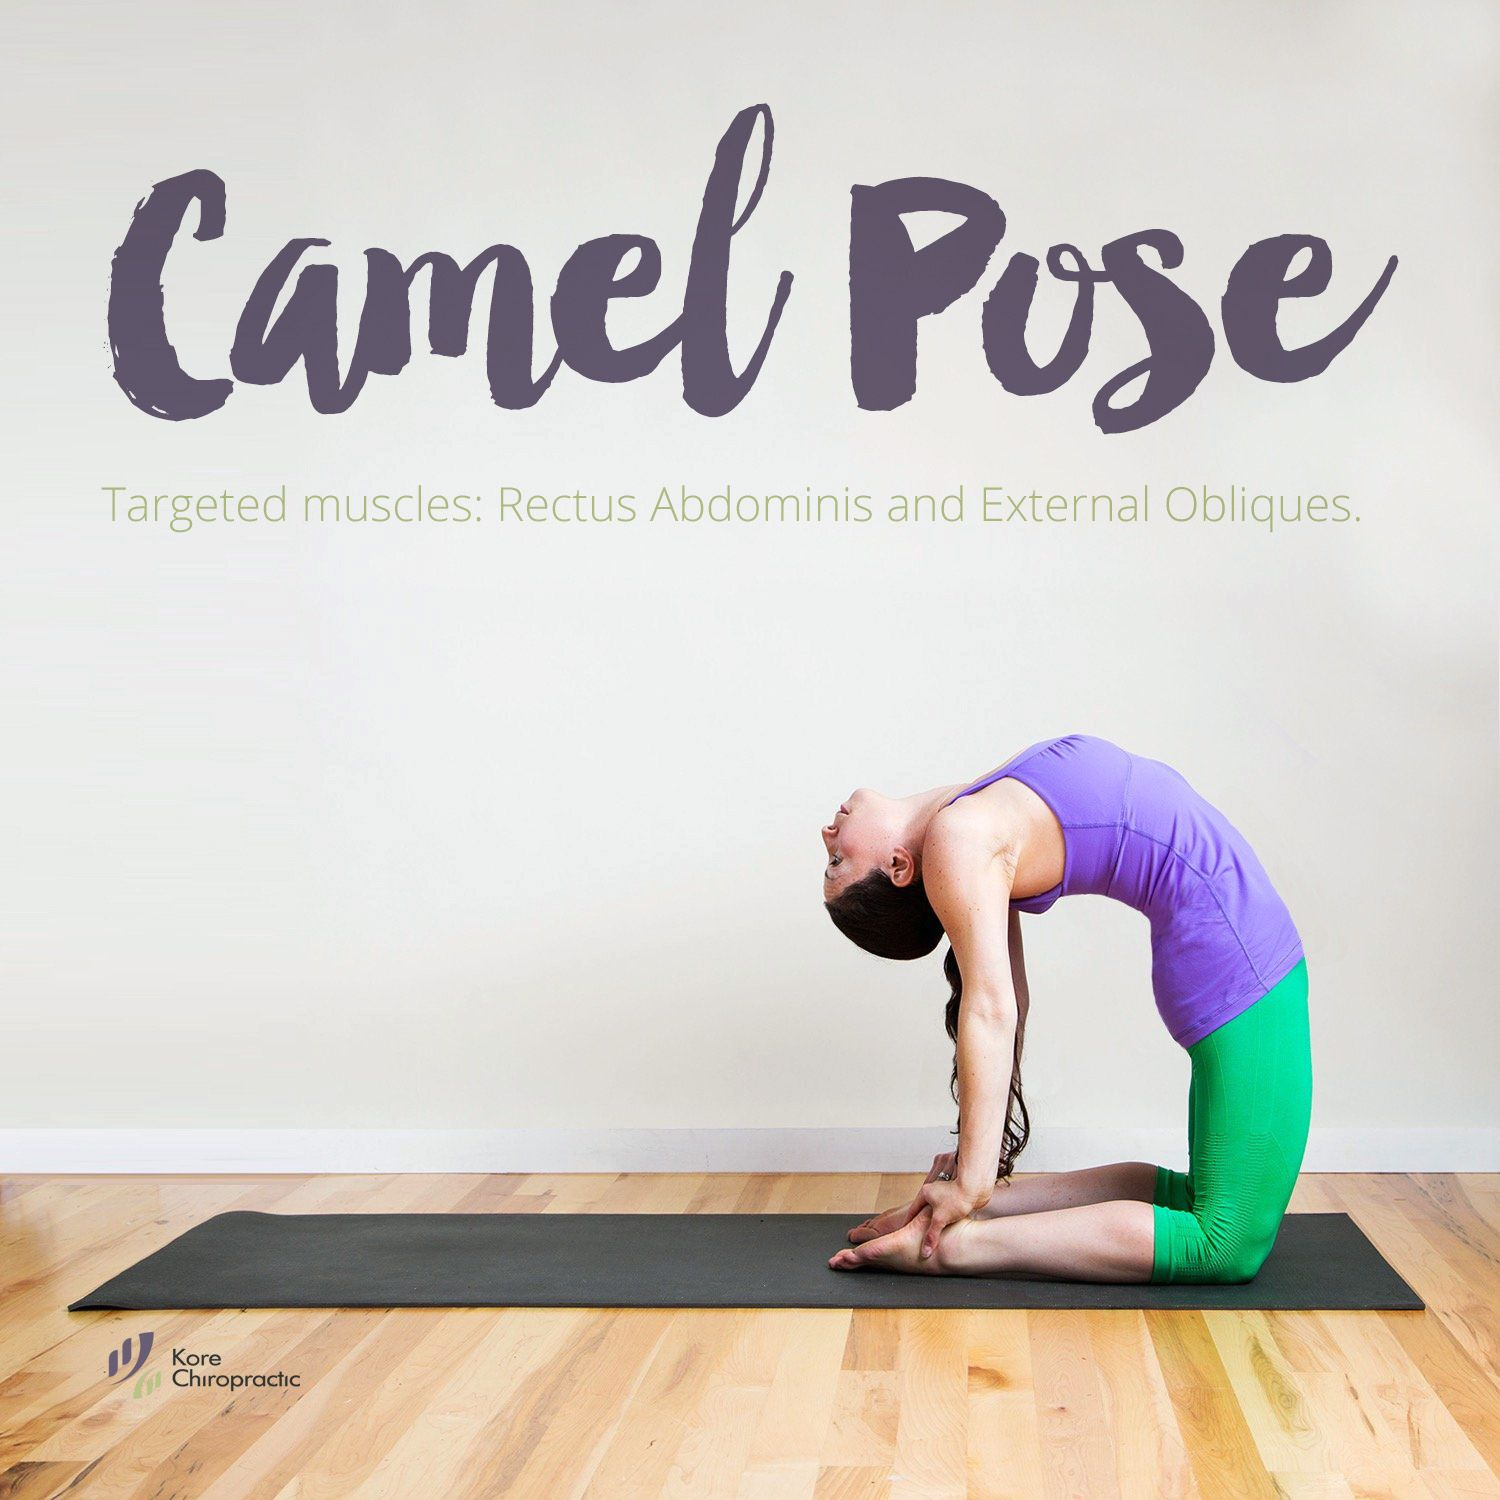 Stretching Camel Pose. Targeted muscles Rectus